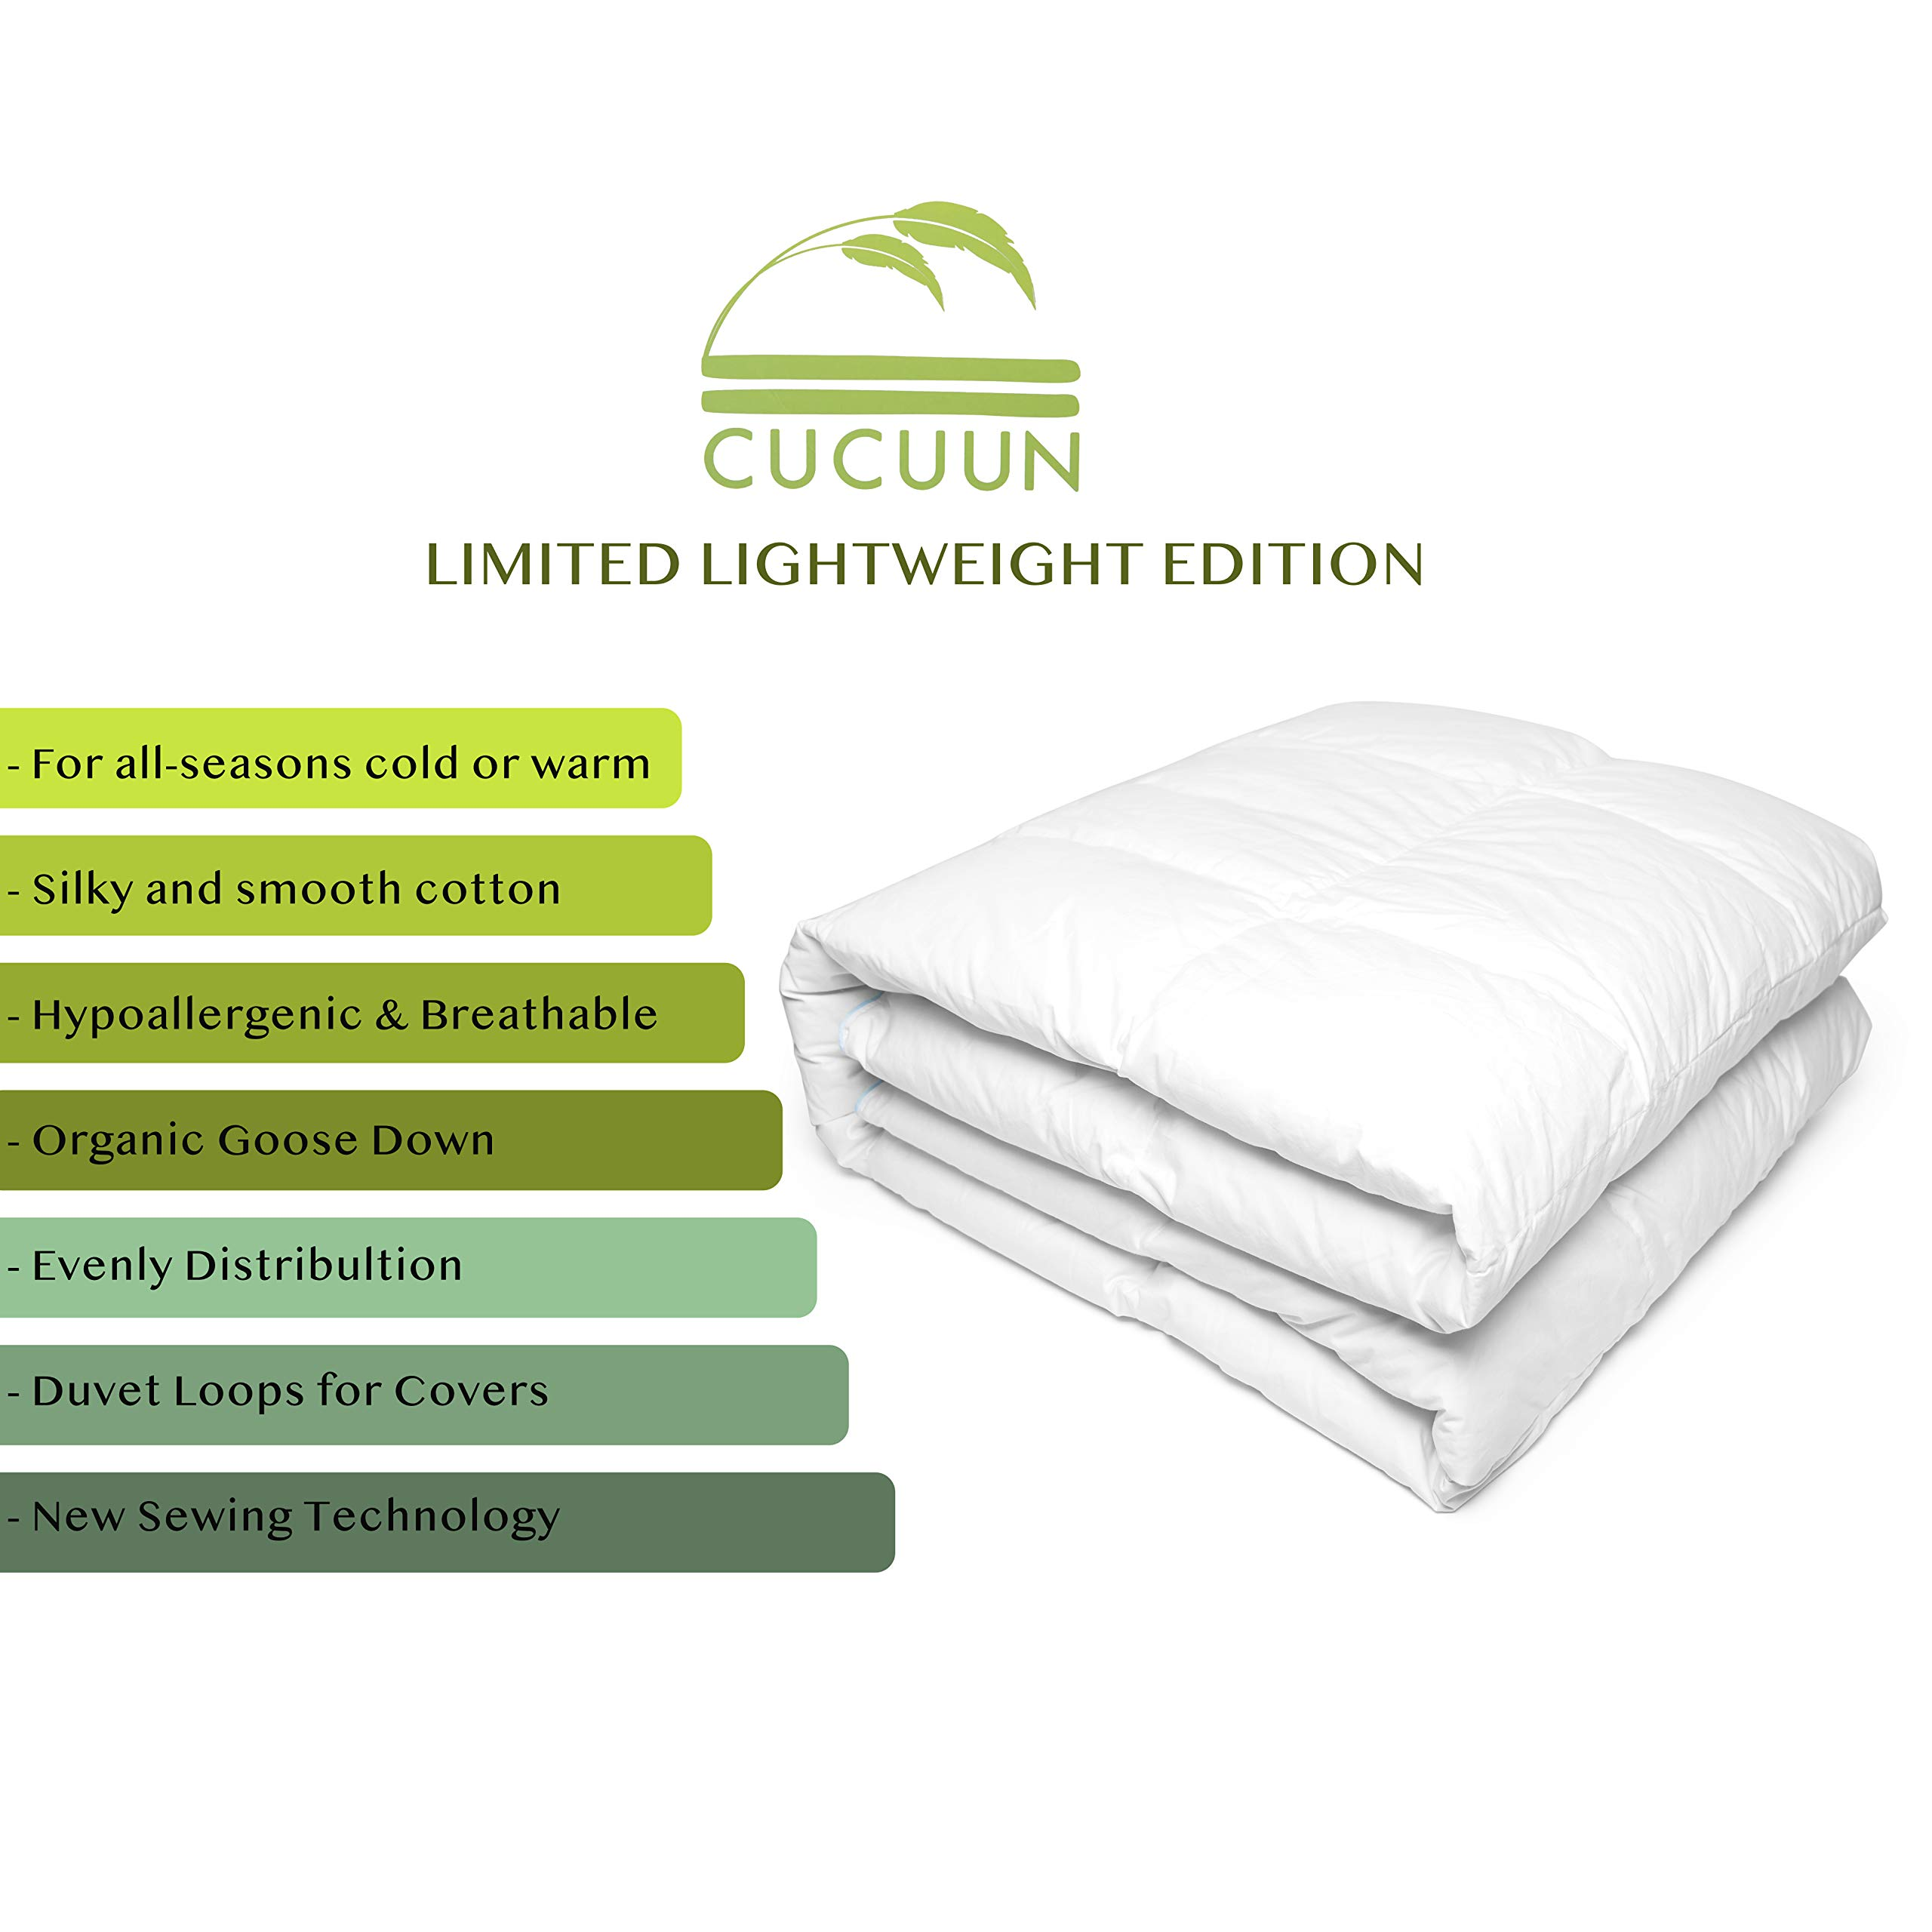 Cucuun Summer Lightweight Goose Down Comforter King Size Duvet Insert Solid White 1200 Thread Count 750+ Fill Power 100% Egyptian Cotton Shell Hypo-allergenic Down by Cucuun (Image #5)